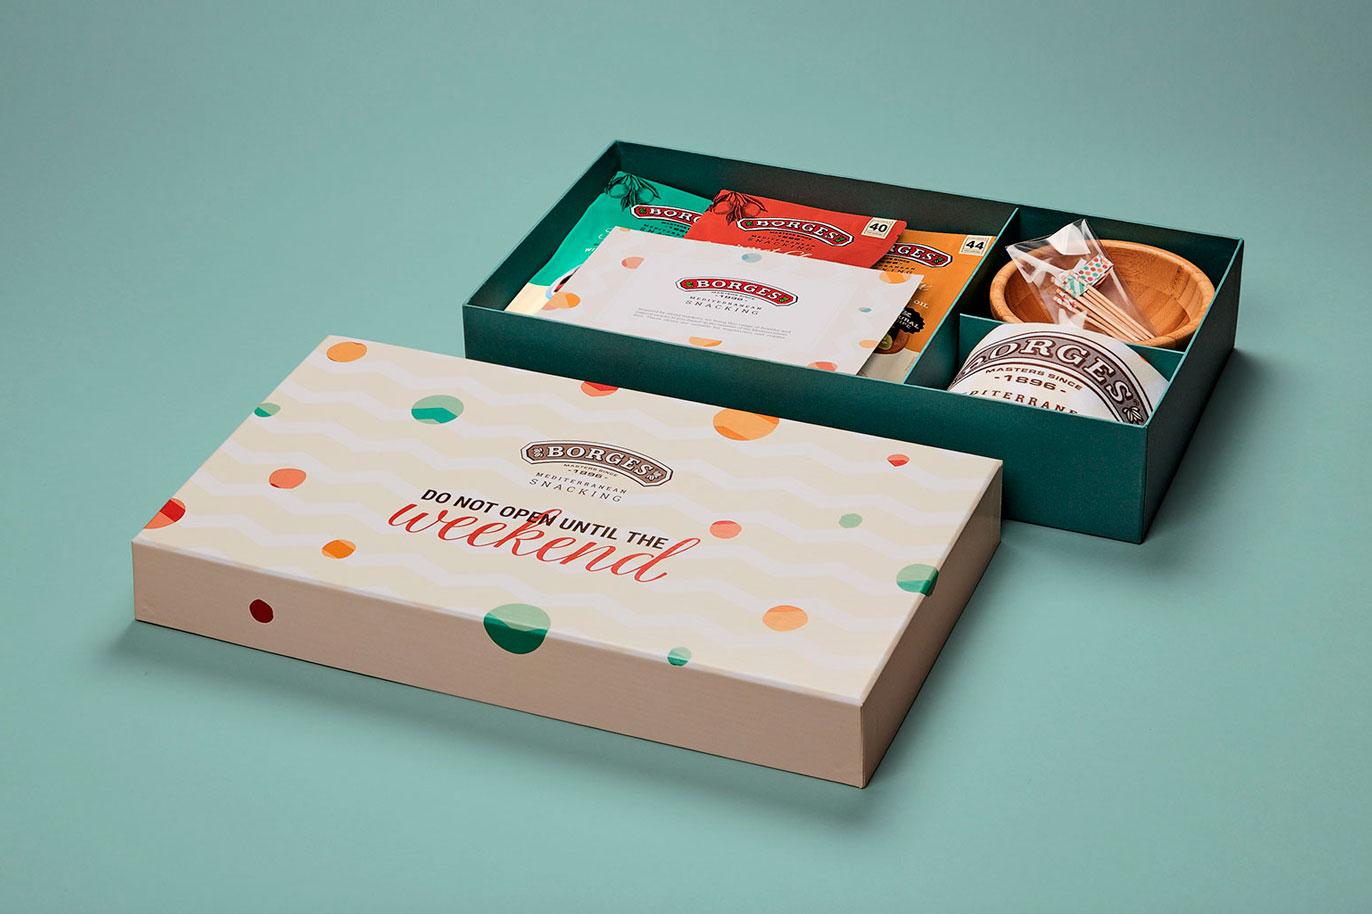 Borges International Group packaging aceitunas diseño gráfico shooting de producto ilustración kit comercial Vibranding